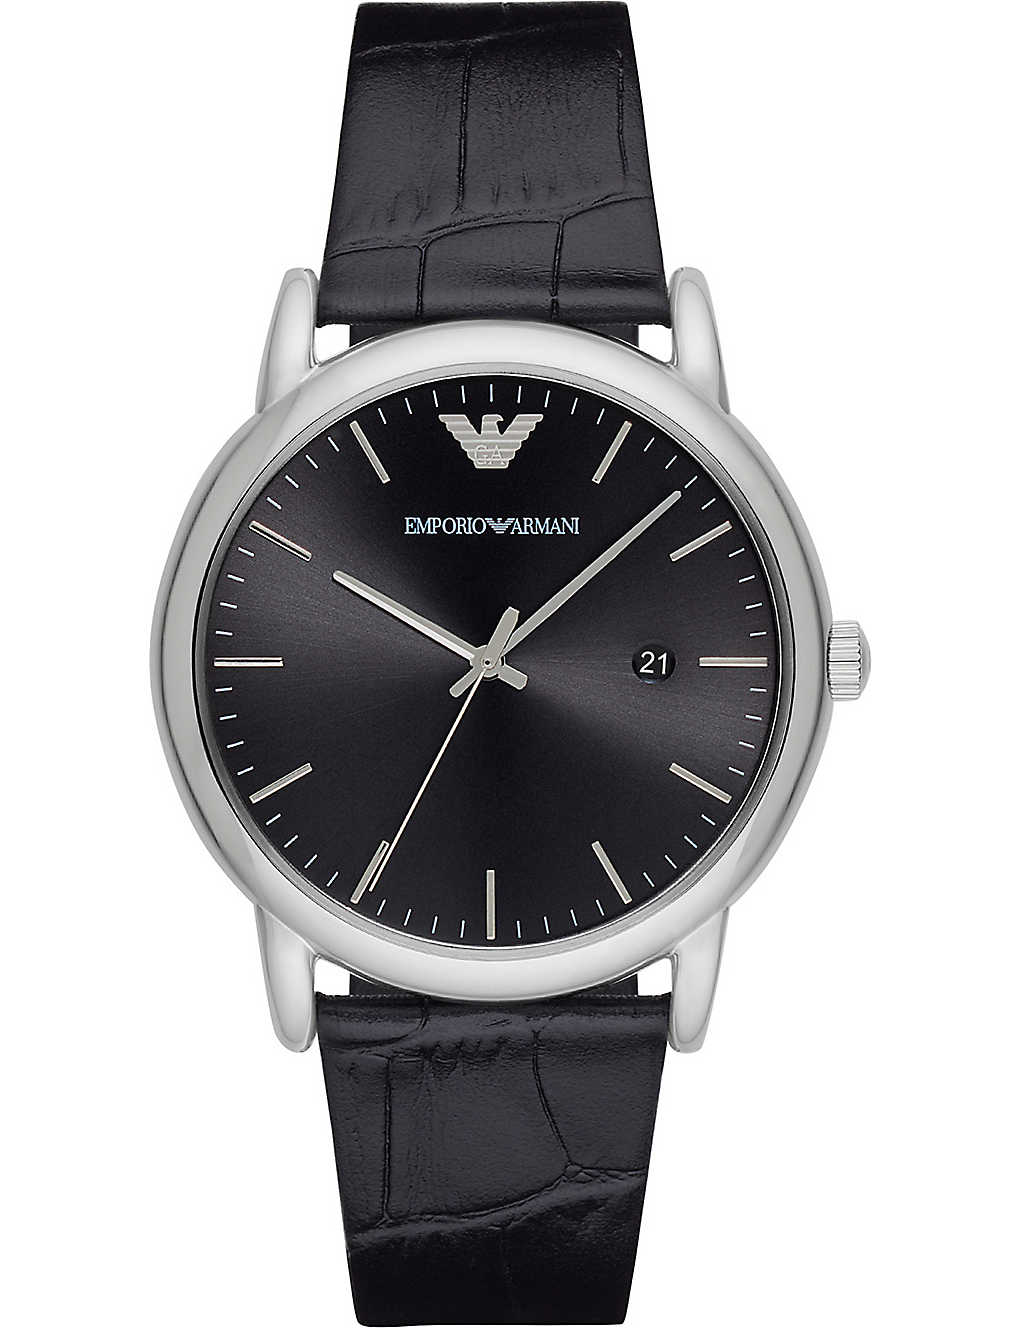 7ecfc5b4 AR2500 stainless steel and leather watch